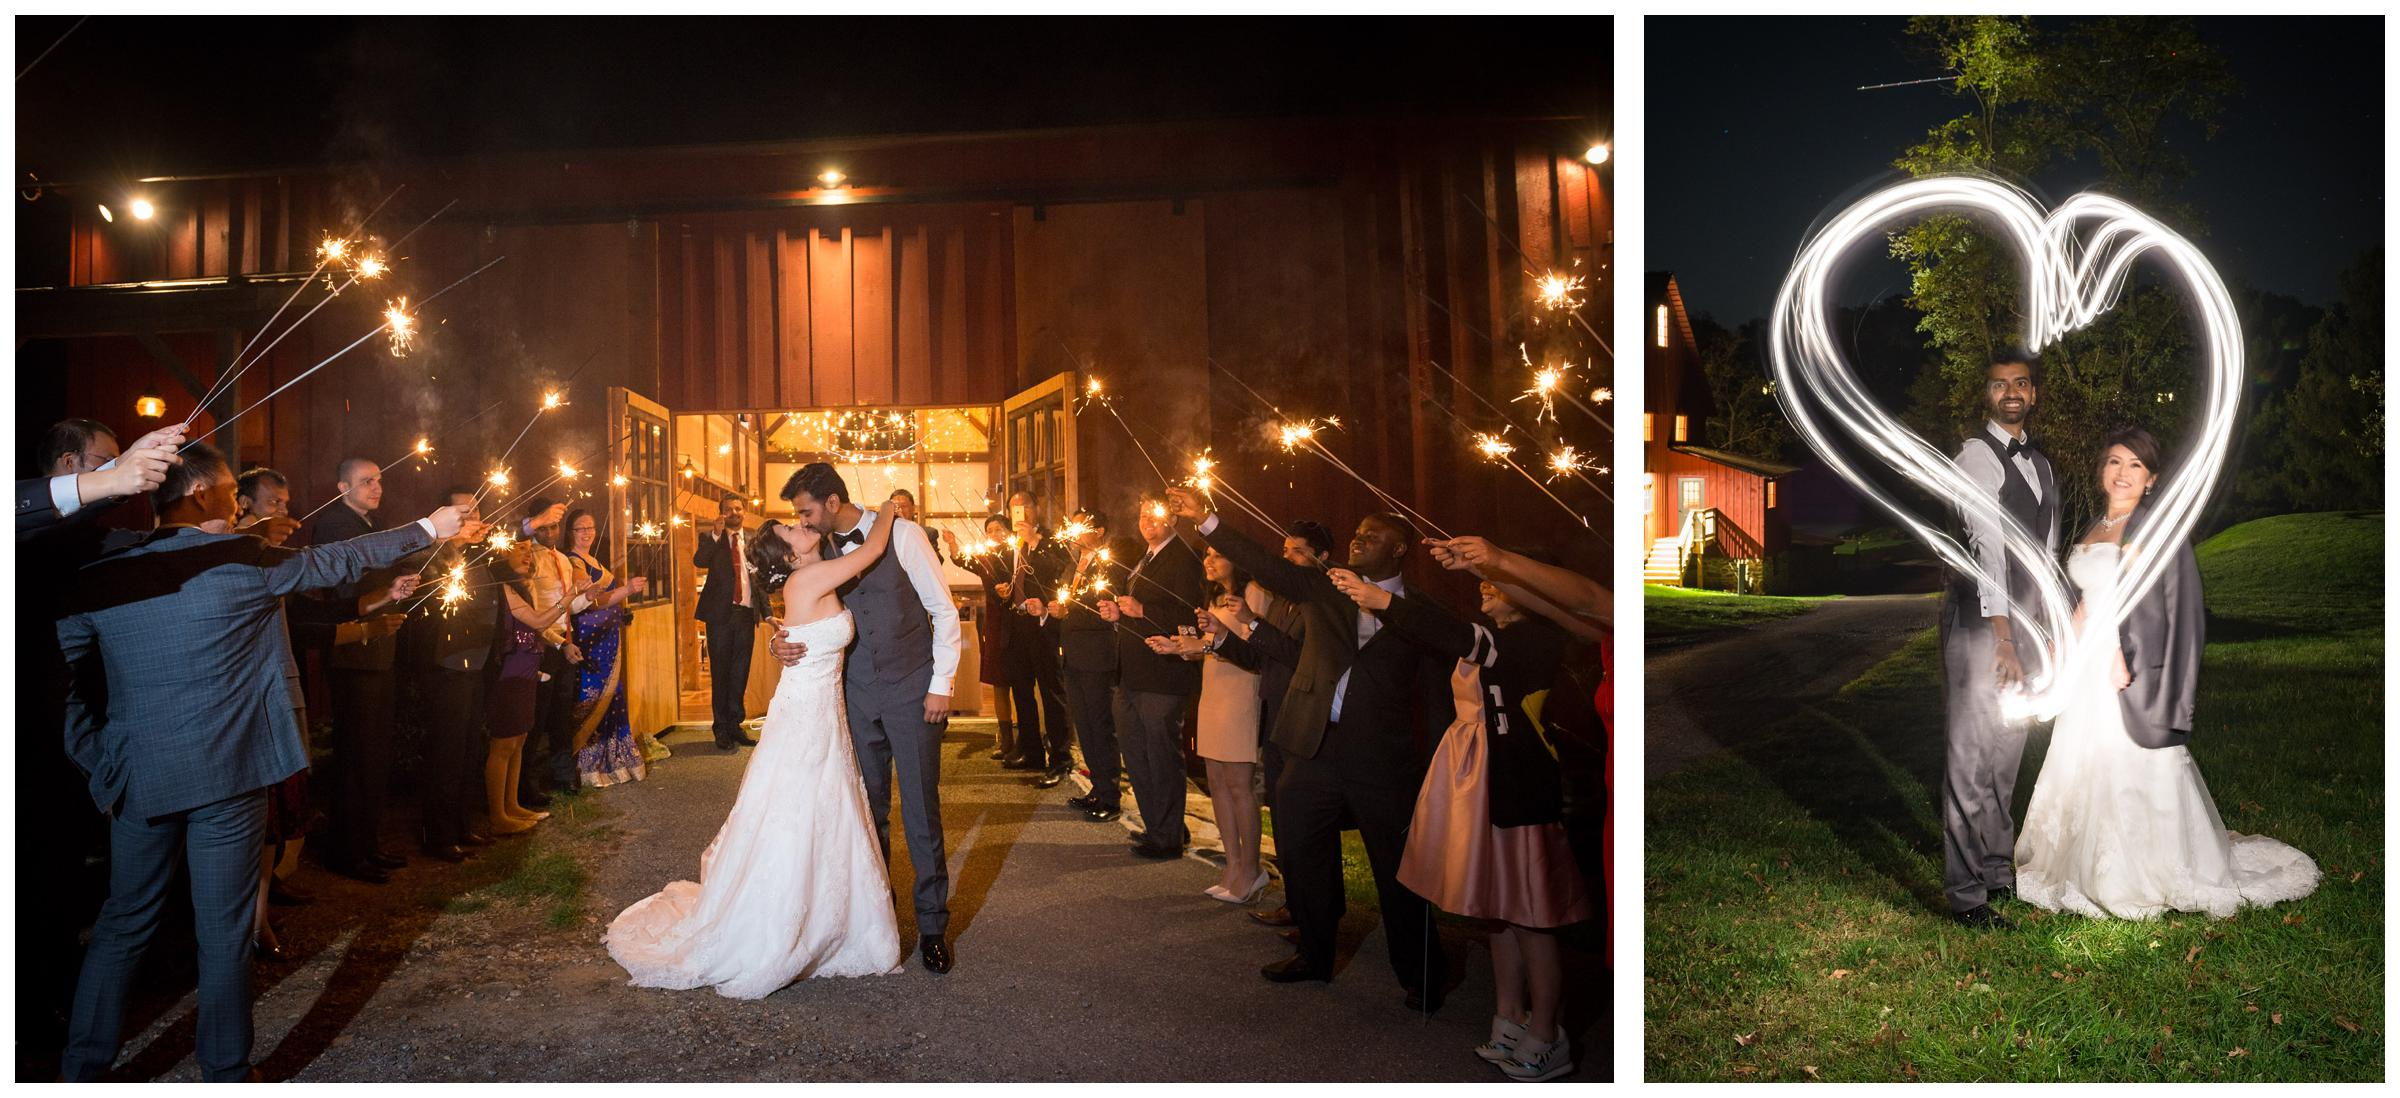 Sparkler exit from rustic wedding reception in barn and light painted heart around newlyweds.